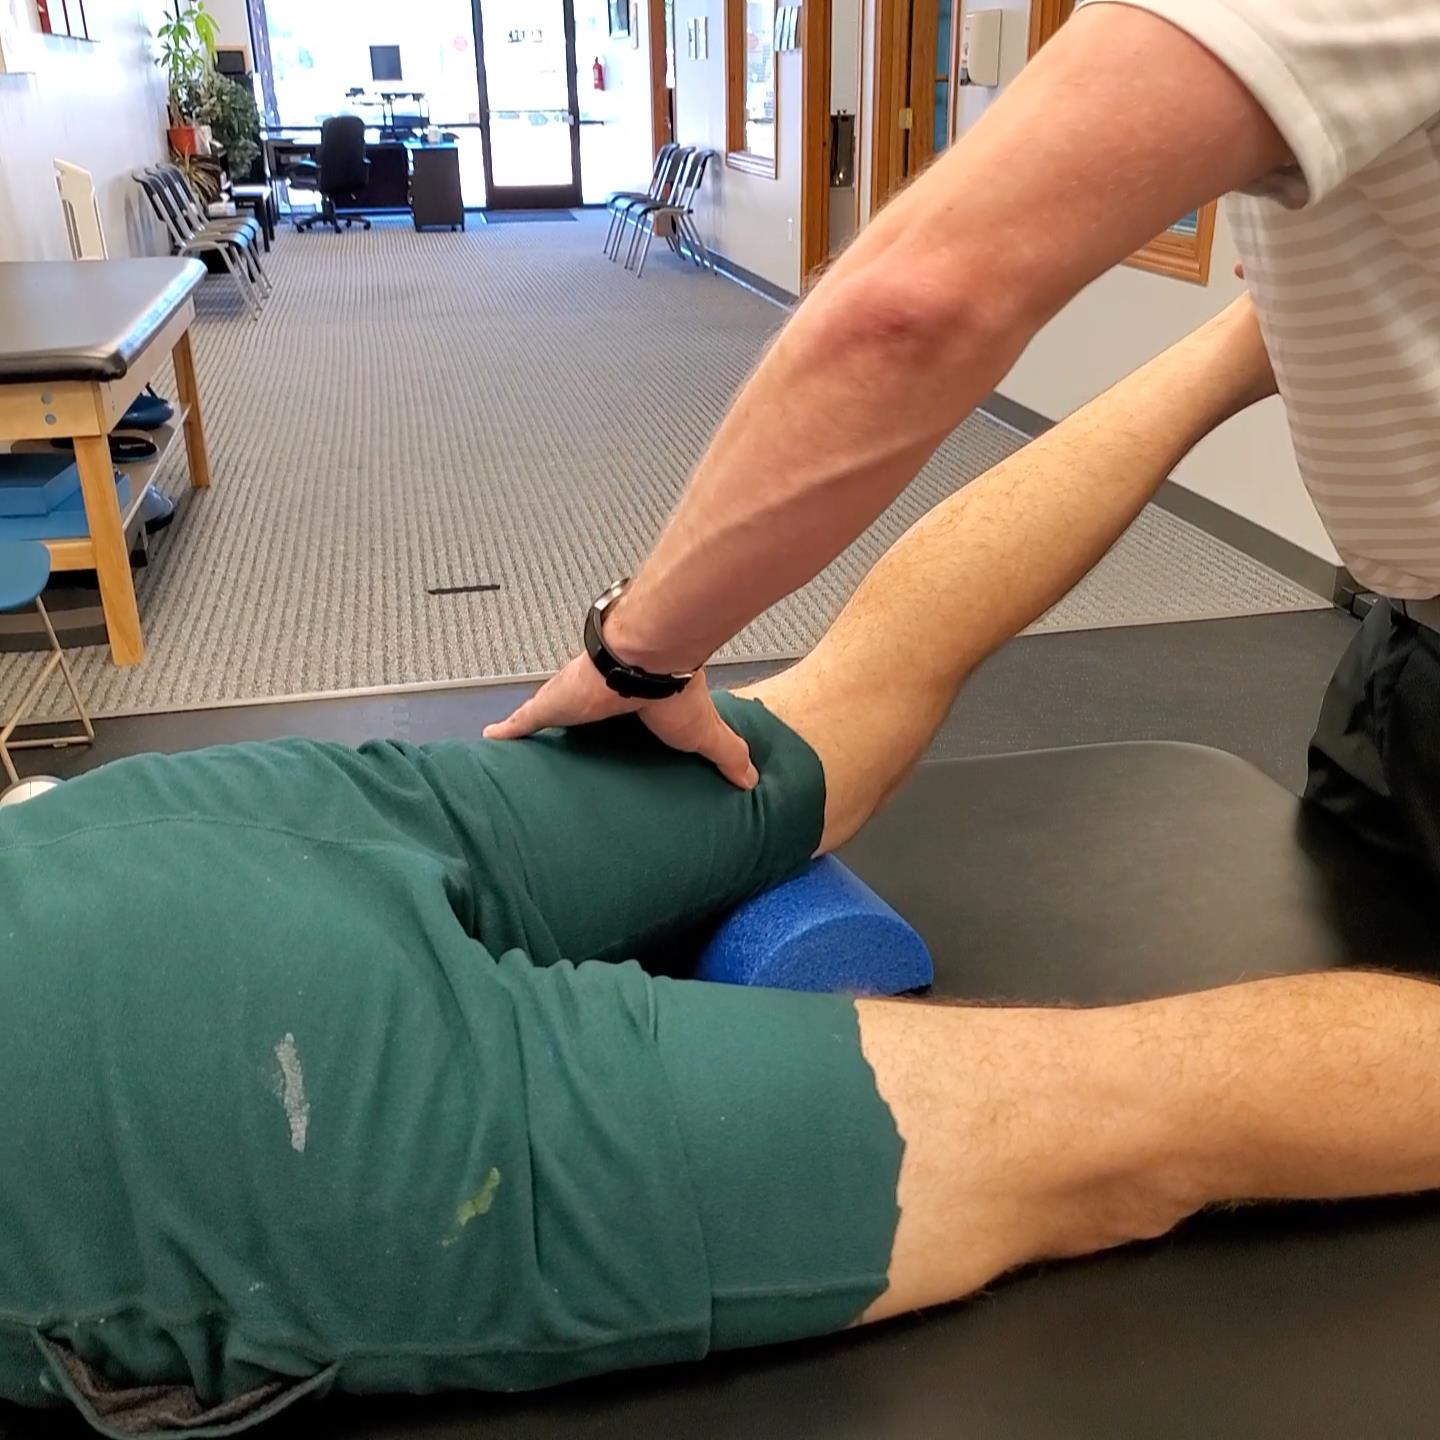 A Dr. using myofascial release on the hamstrings.